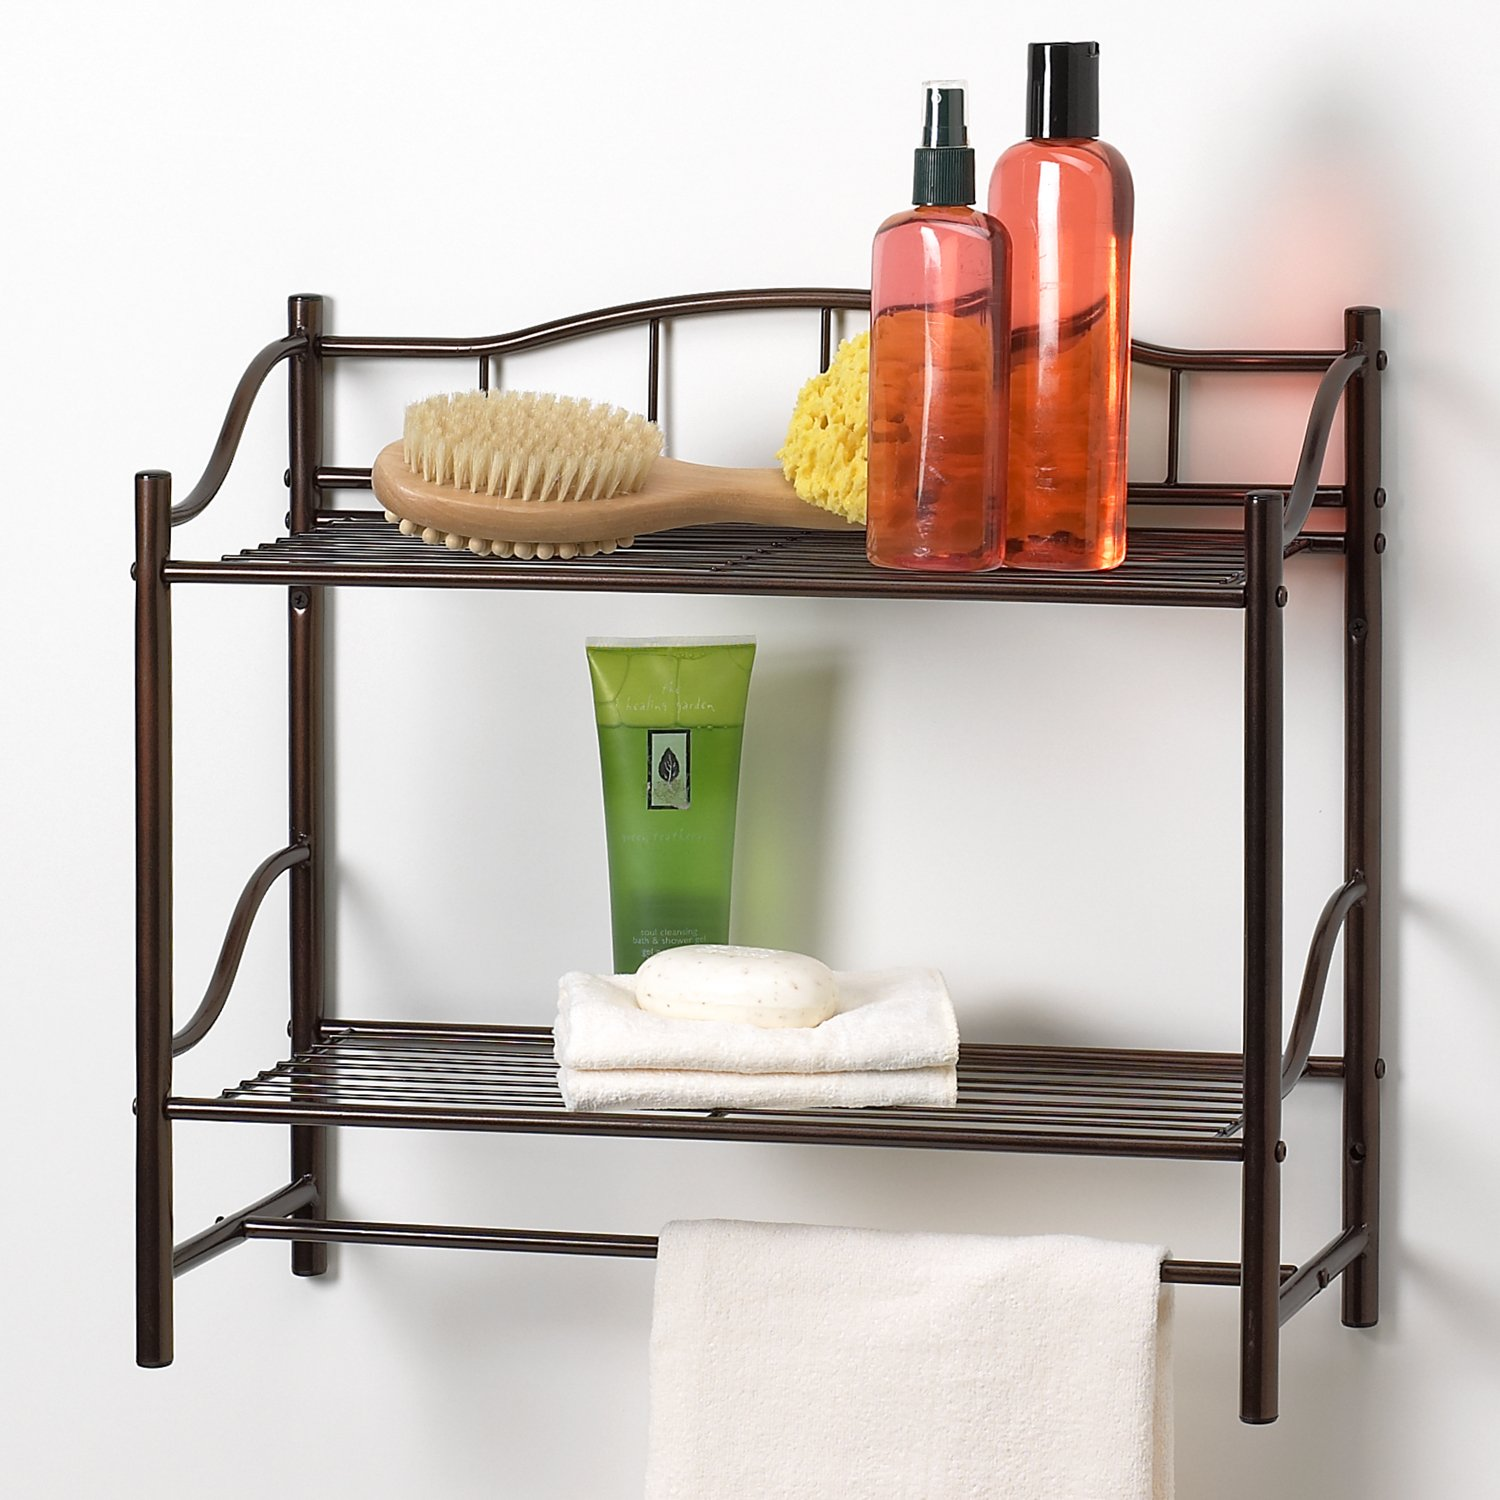 Bathroom 2 Shelf Organizer Towel Bar Wall Mounted Caddy